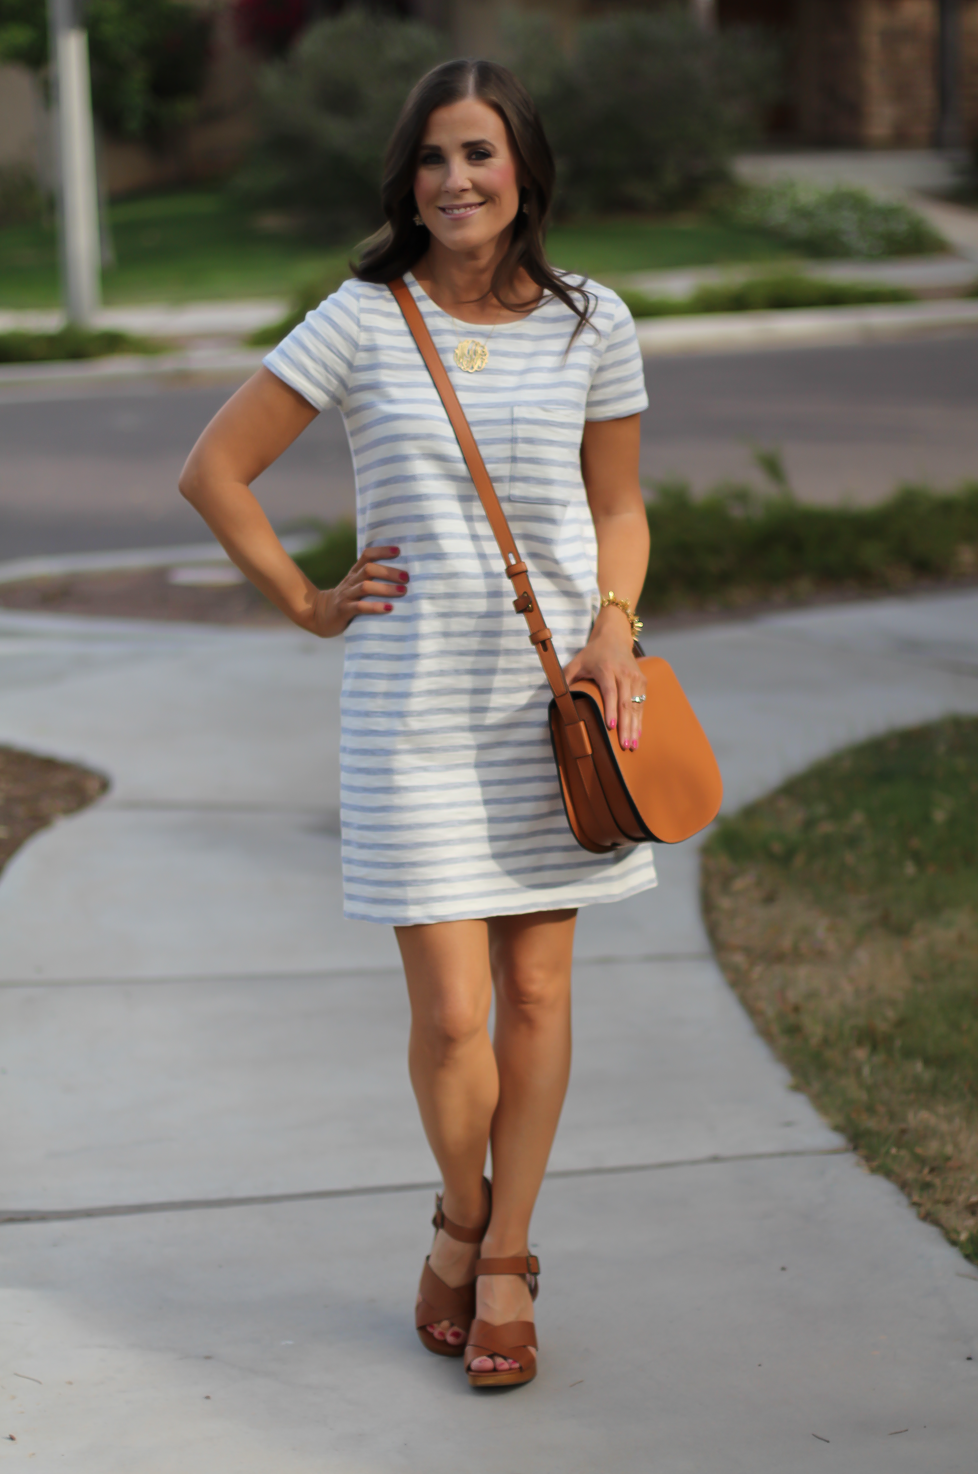 Grey Striped Button Back Short Sleeve Dress, Cognac Leather Wedge Sandals, Cognac Saddlebag, Madewell, Tory Burch 11